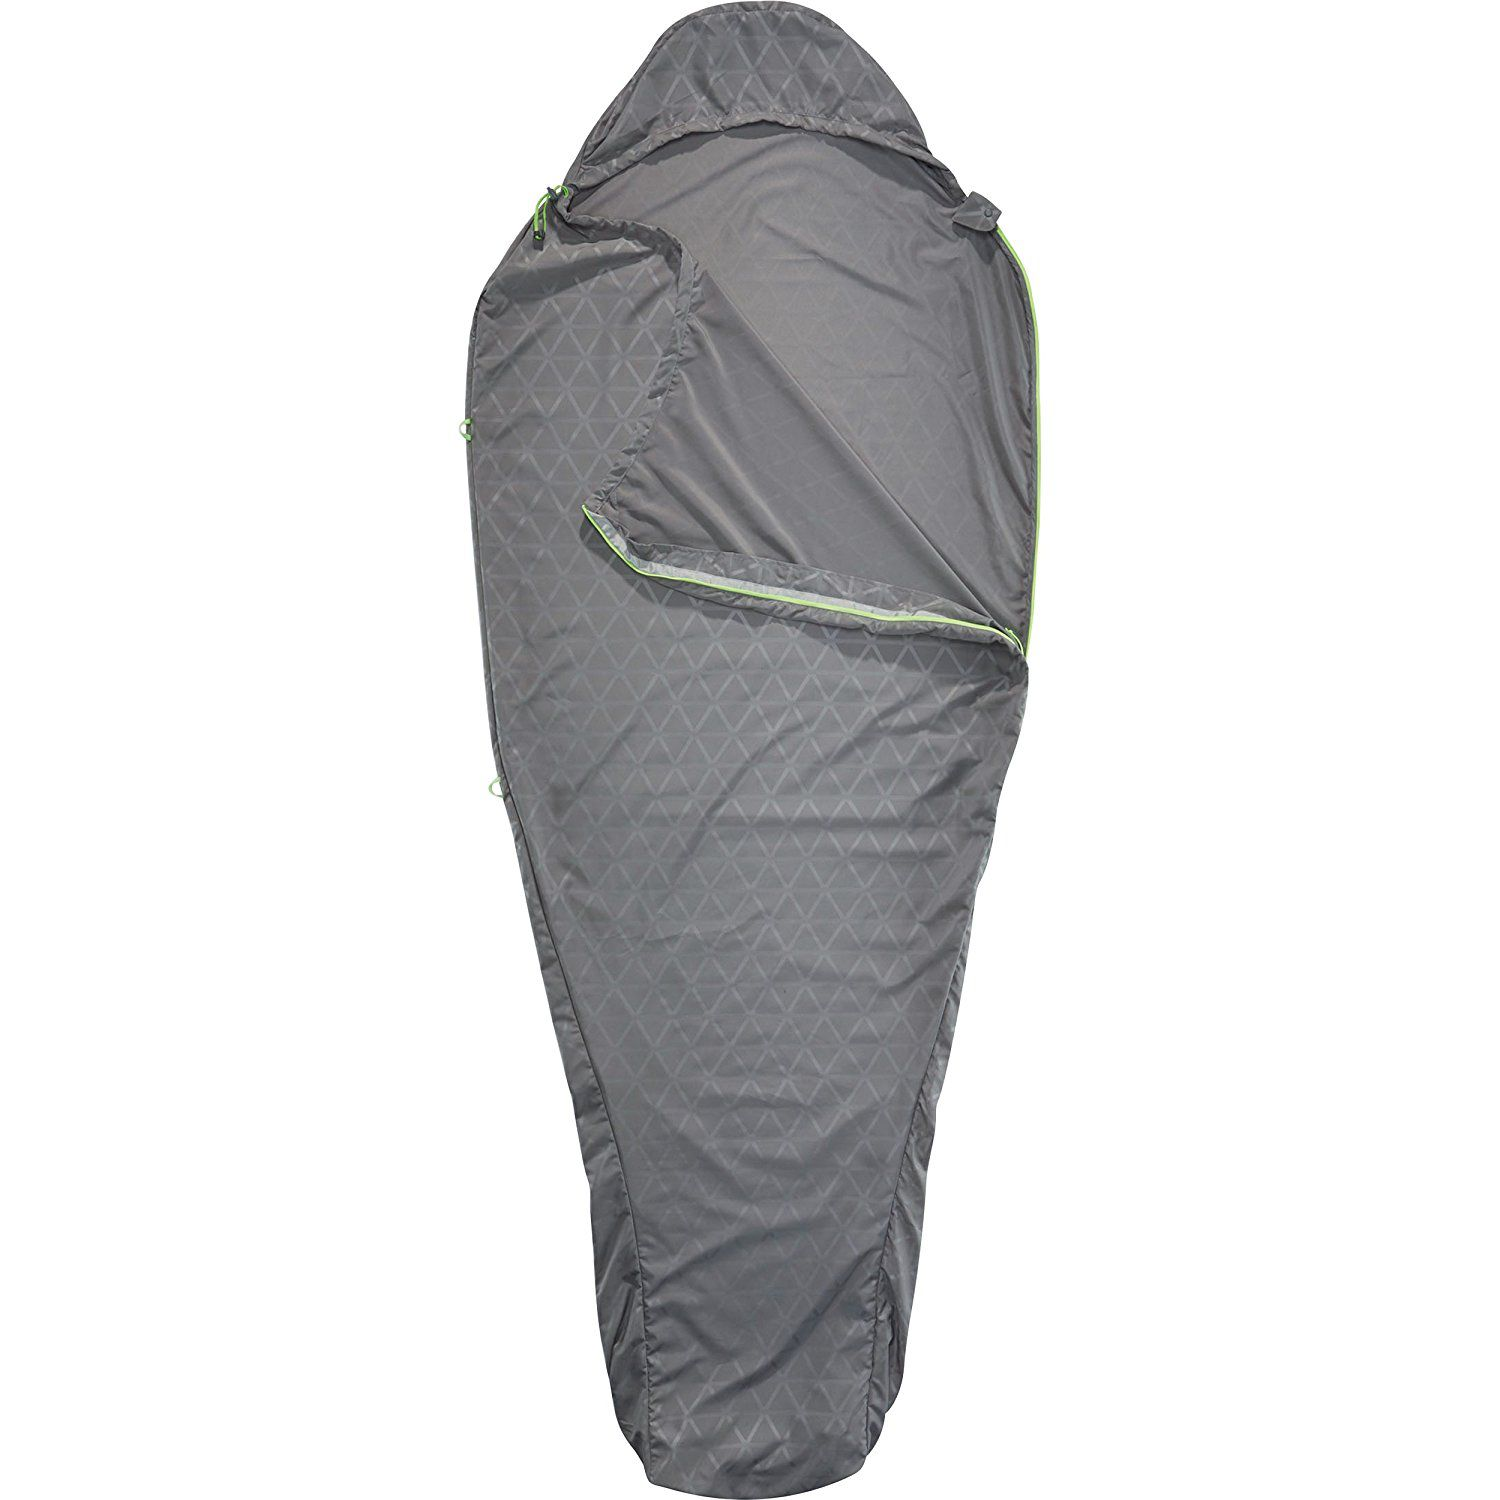 Therm A Rest Sleeping Bag Liner